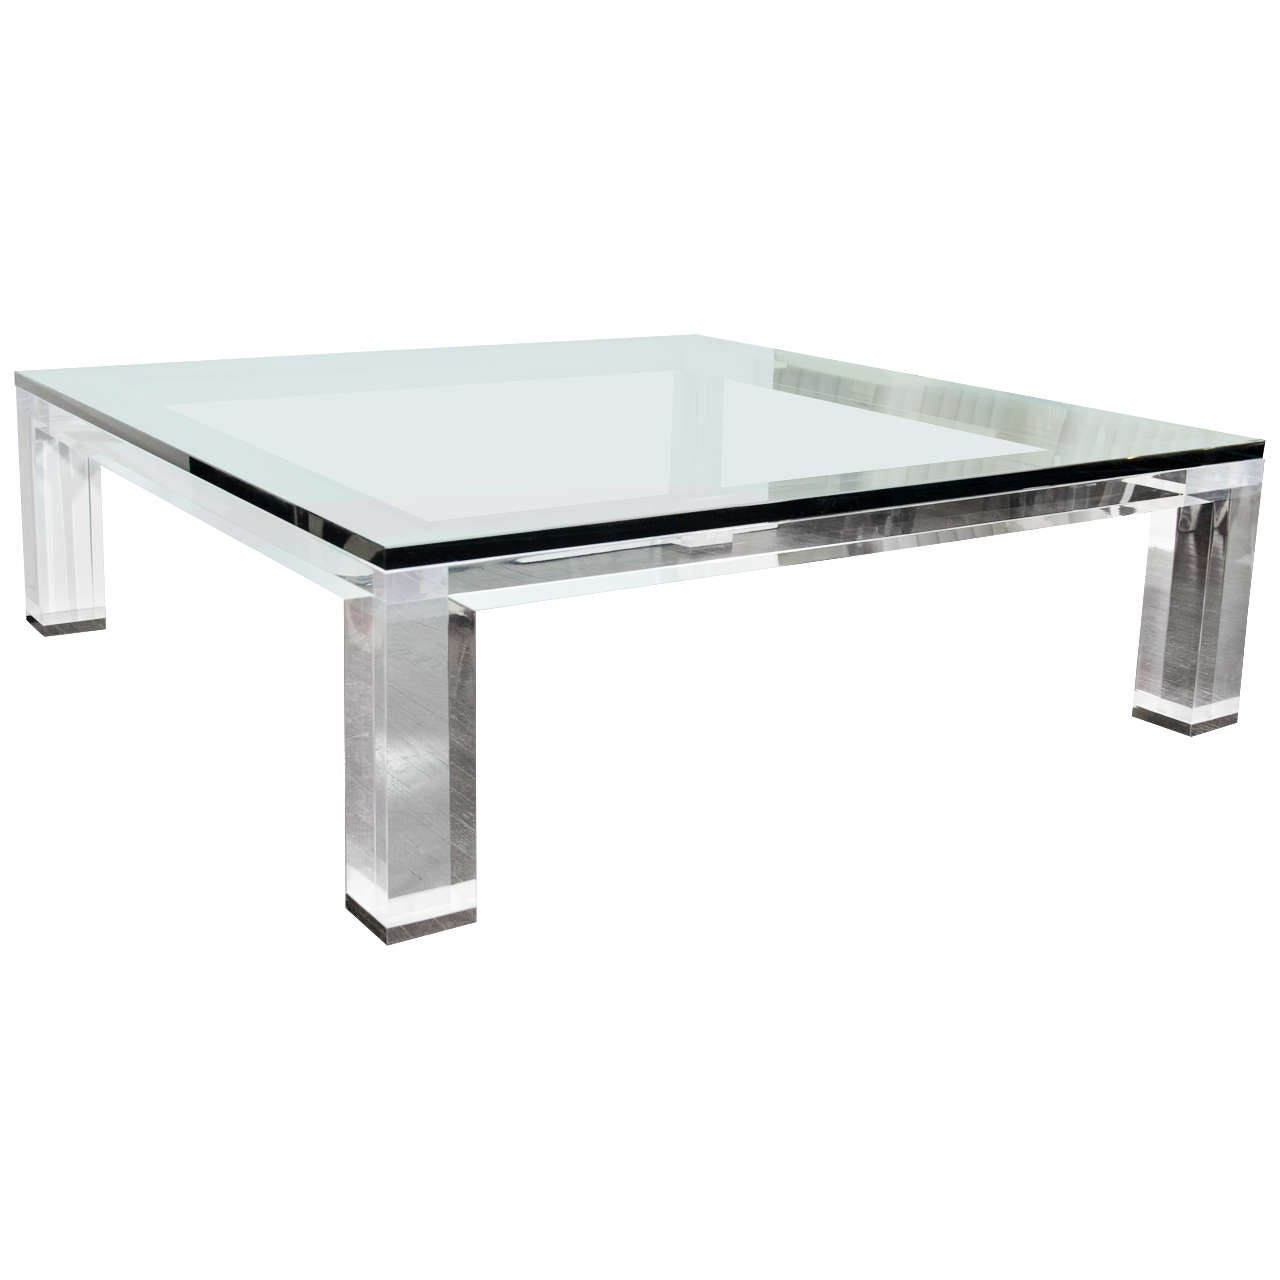 Custom lucite and glass coffee table for sale at 1stdibs for Acrylic coffee tables for sale